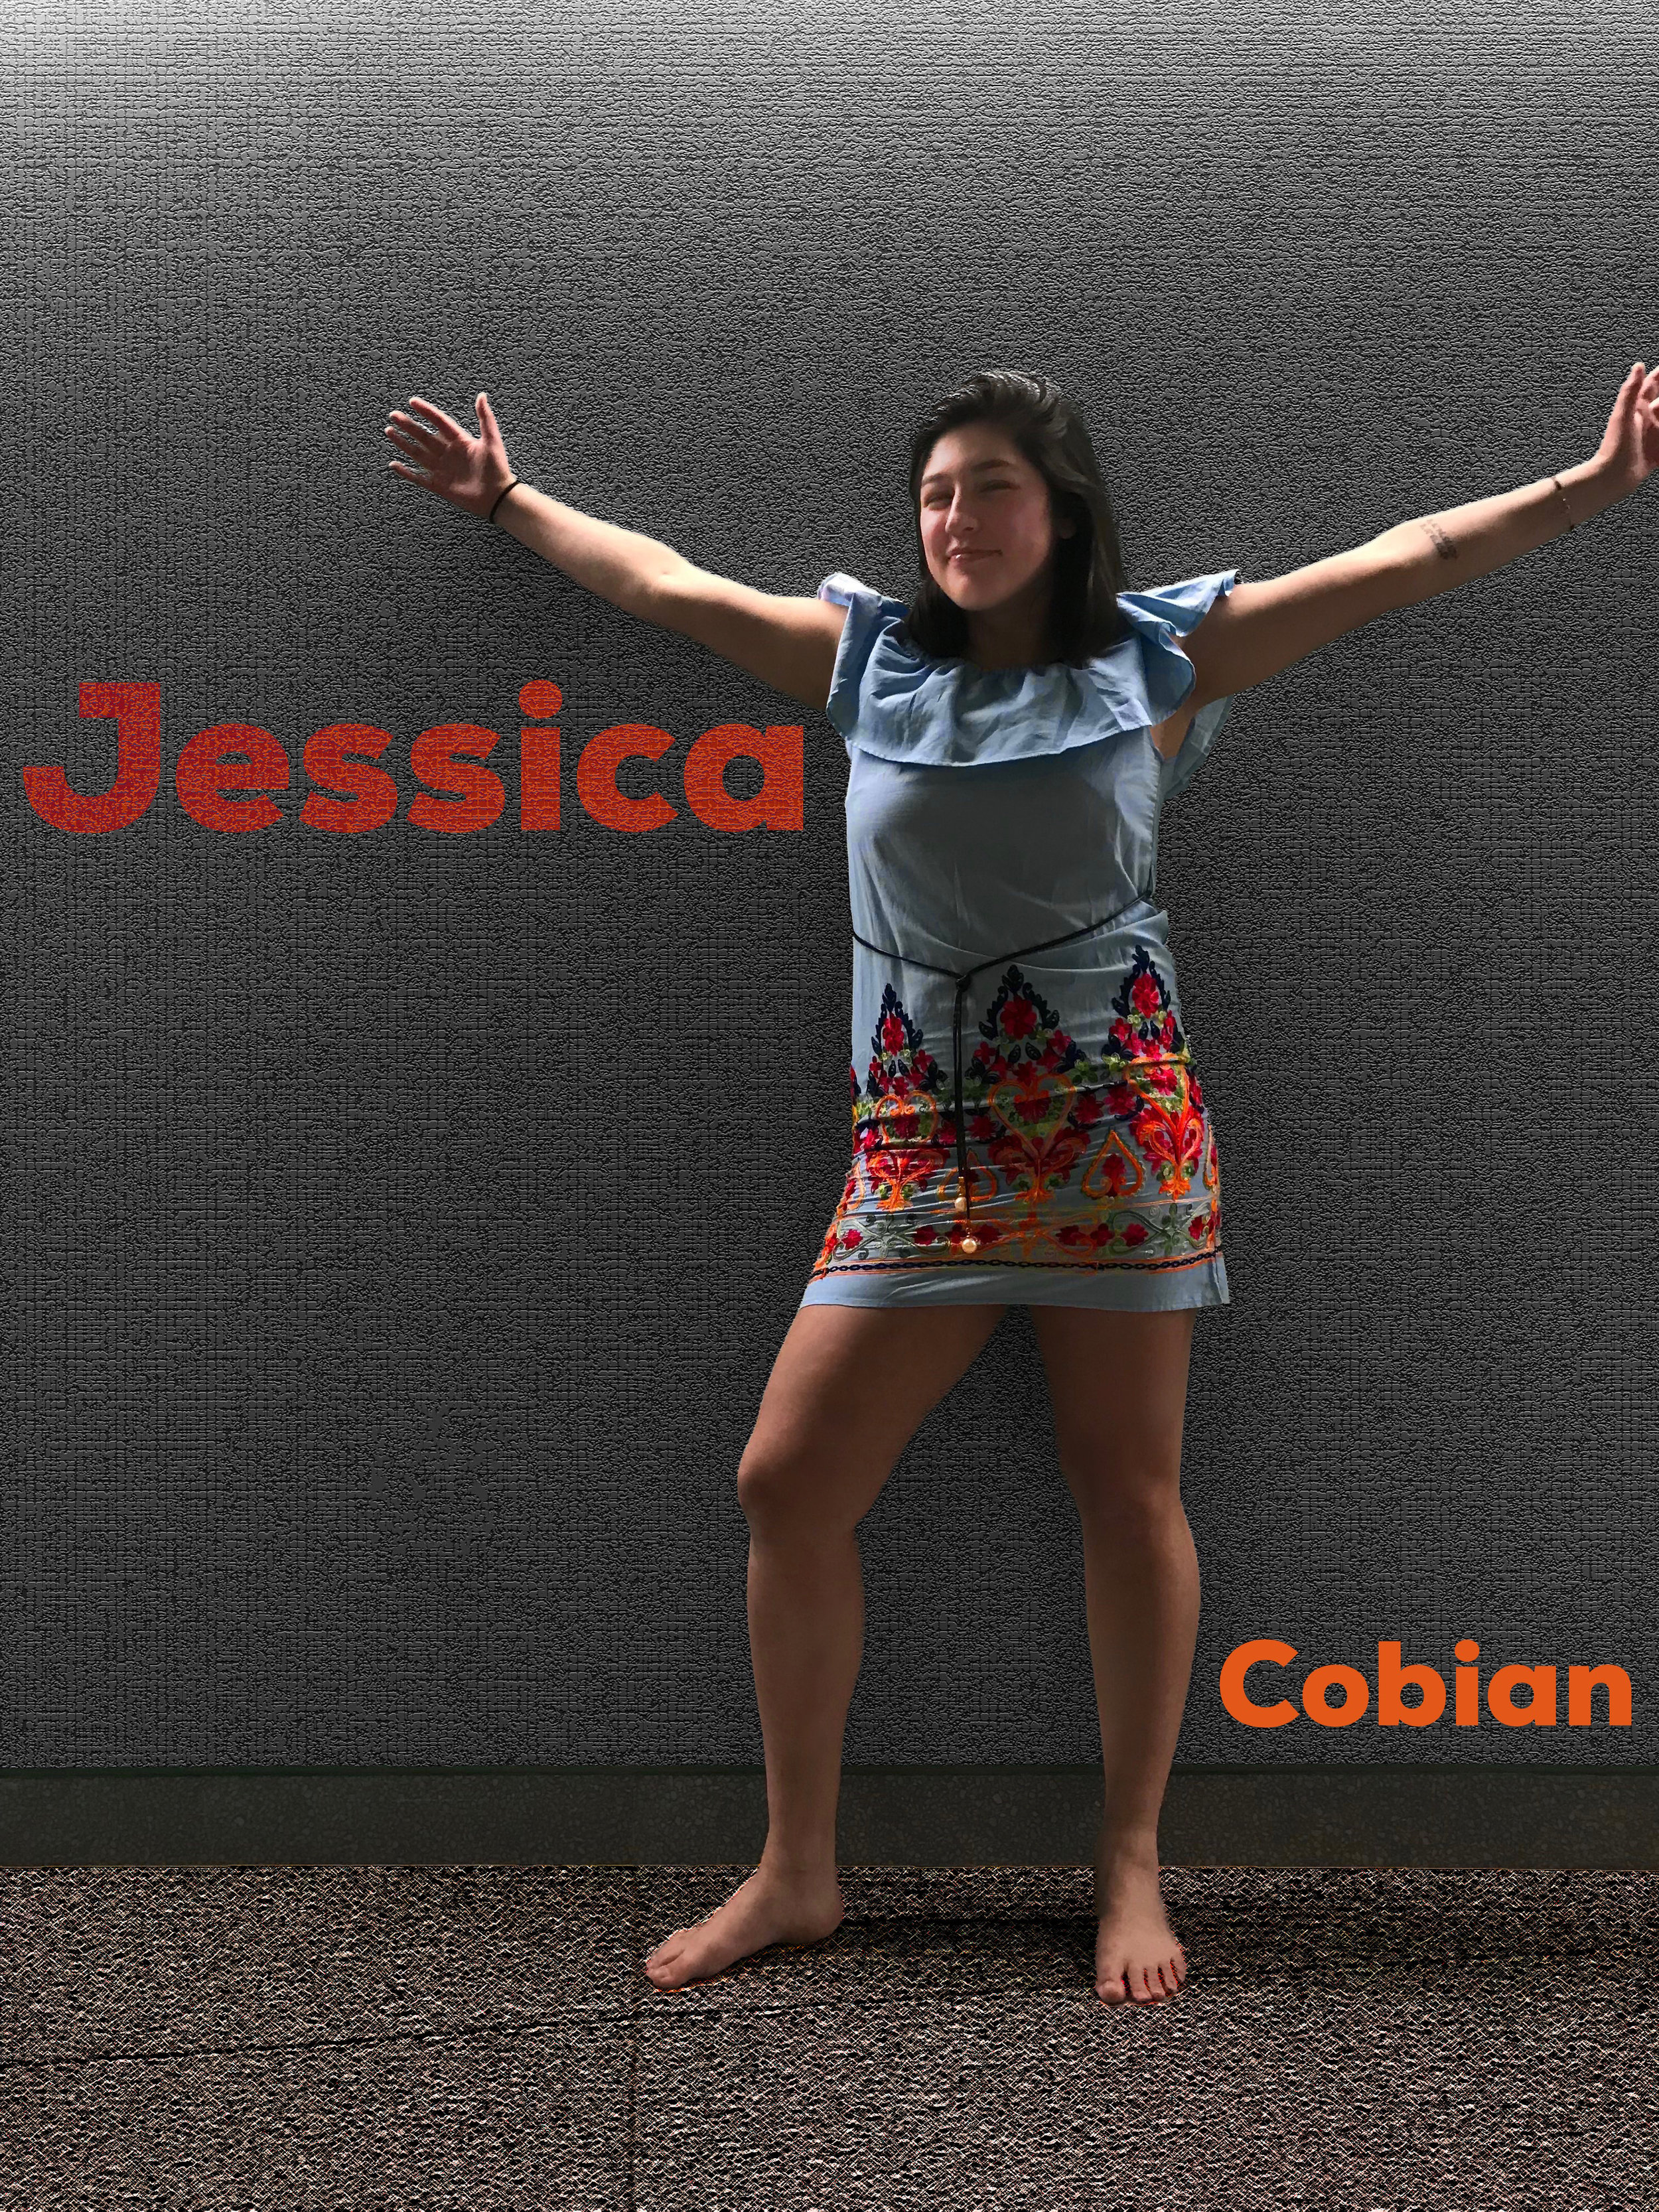 """Jessica Cobian- Modern Mexican Dress   While I was home, I saw the dress in my sister's closet, and I explained to her my dilemma of finding a cultural outfit. She thought this dress would be a good fit for the shoot. The colorful bottom reminds me of shirts and jeans I have seen on sale in stores in Mexico. The layered top resembles traditional Mexican style dresses but with a modern twist. The dress to me showed """"Mexican"""" as modern and stylish as opposed to un-developed. I chose to pose with open arms because Mexican families are welcoming and caring. I embrace my identity, and this dress reminded me of the things I love the most about my culture: color, warm smiles, and a sense of home."""